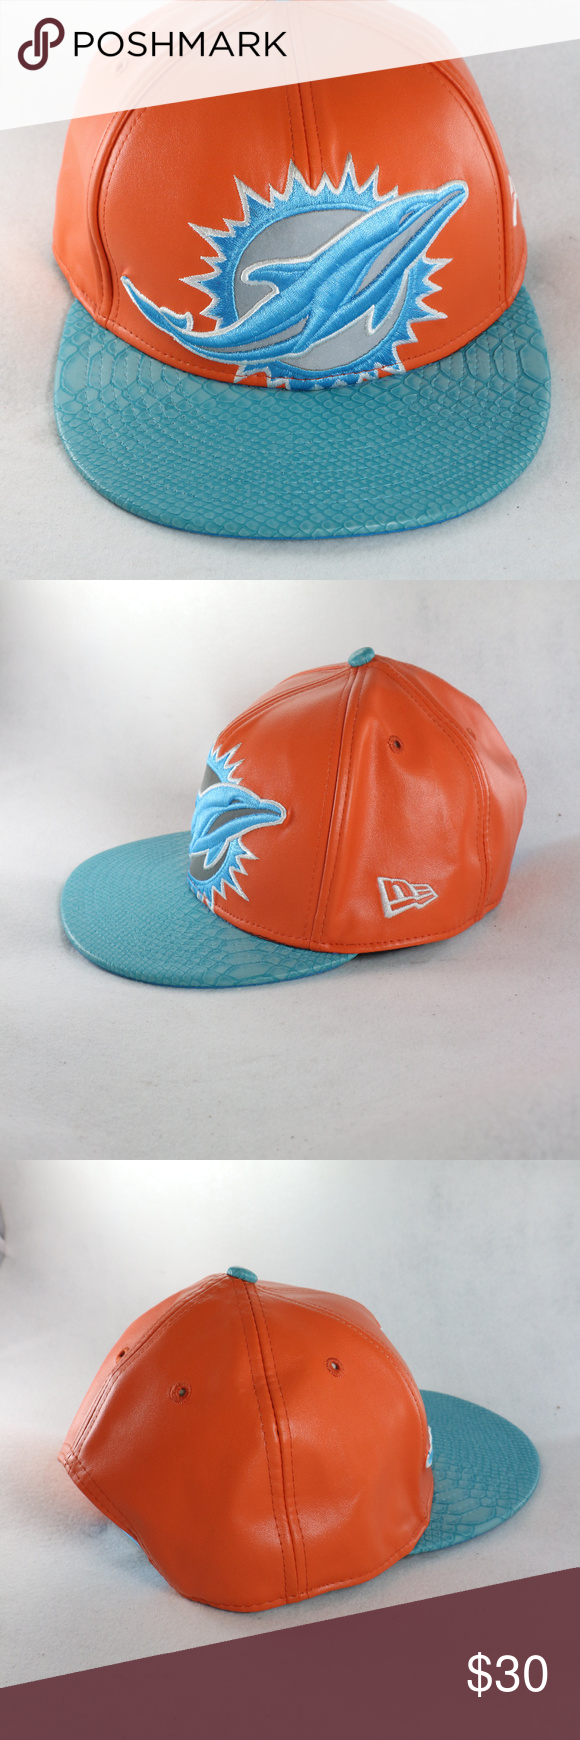 47dfe17f NFL Vintage MIAMI Dolphins Leather Snapback Hat Alternate color than ...